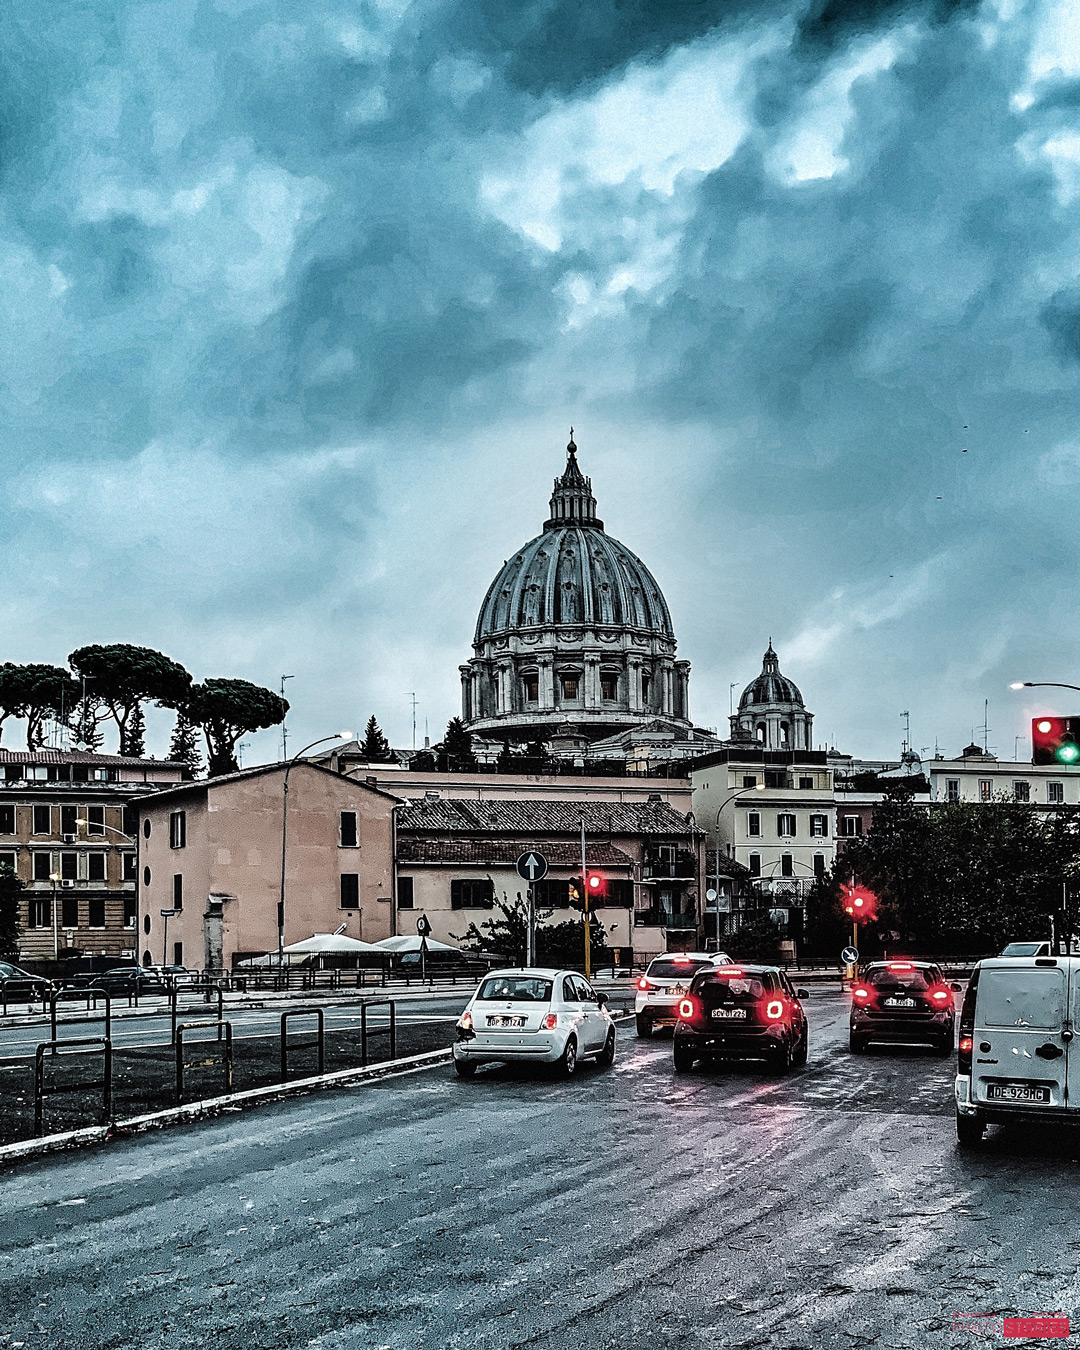 Dramatic Sky over St. Peter's in Rome